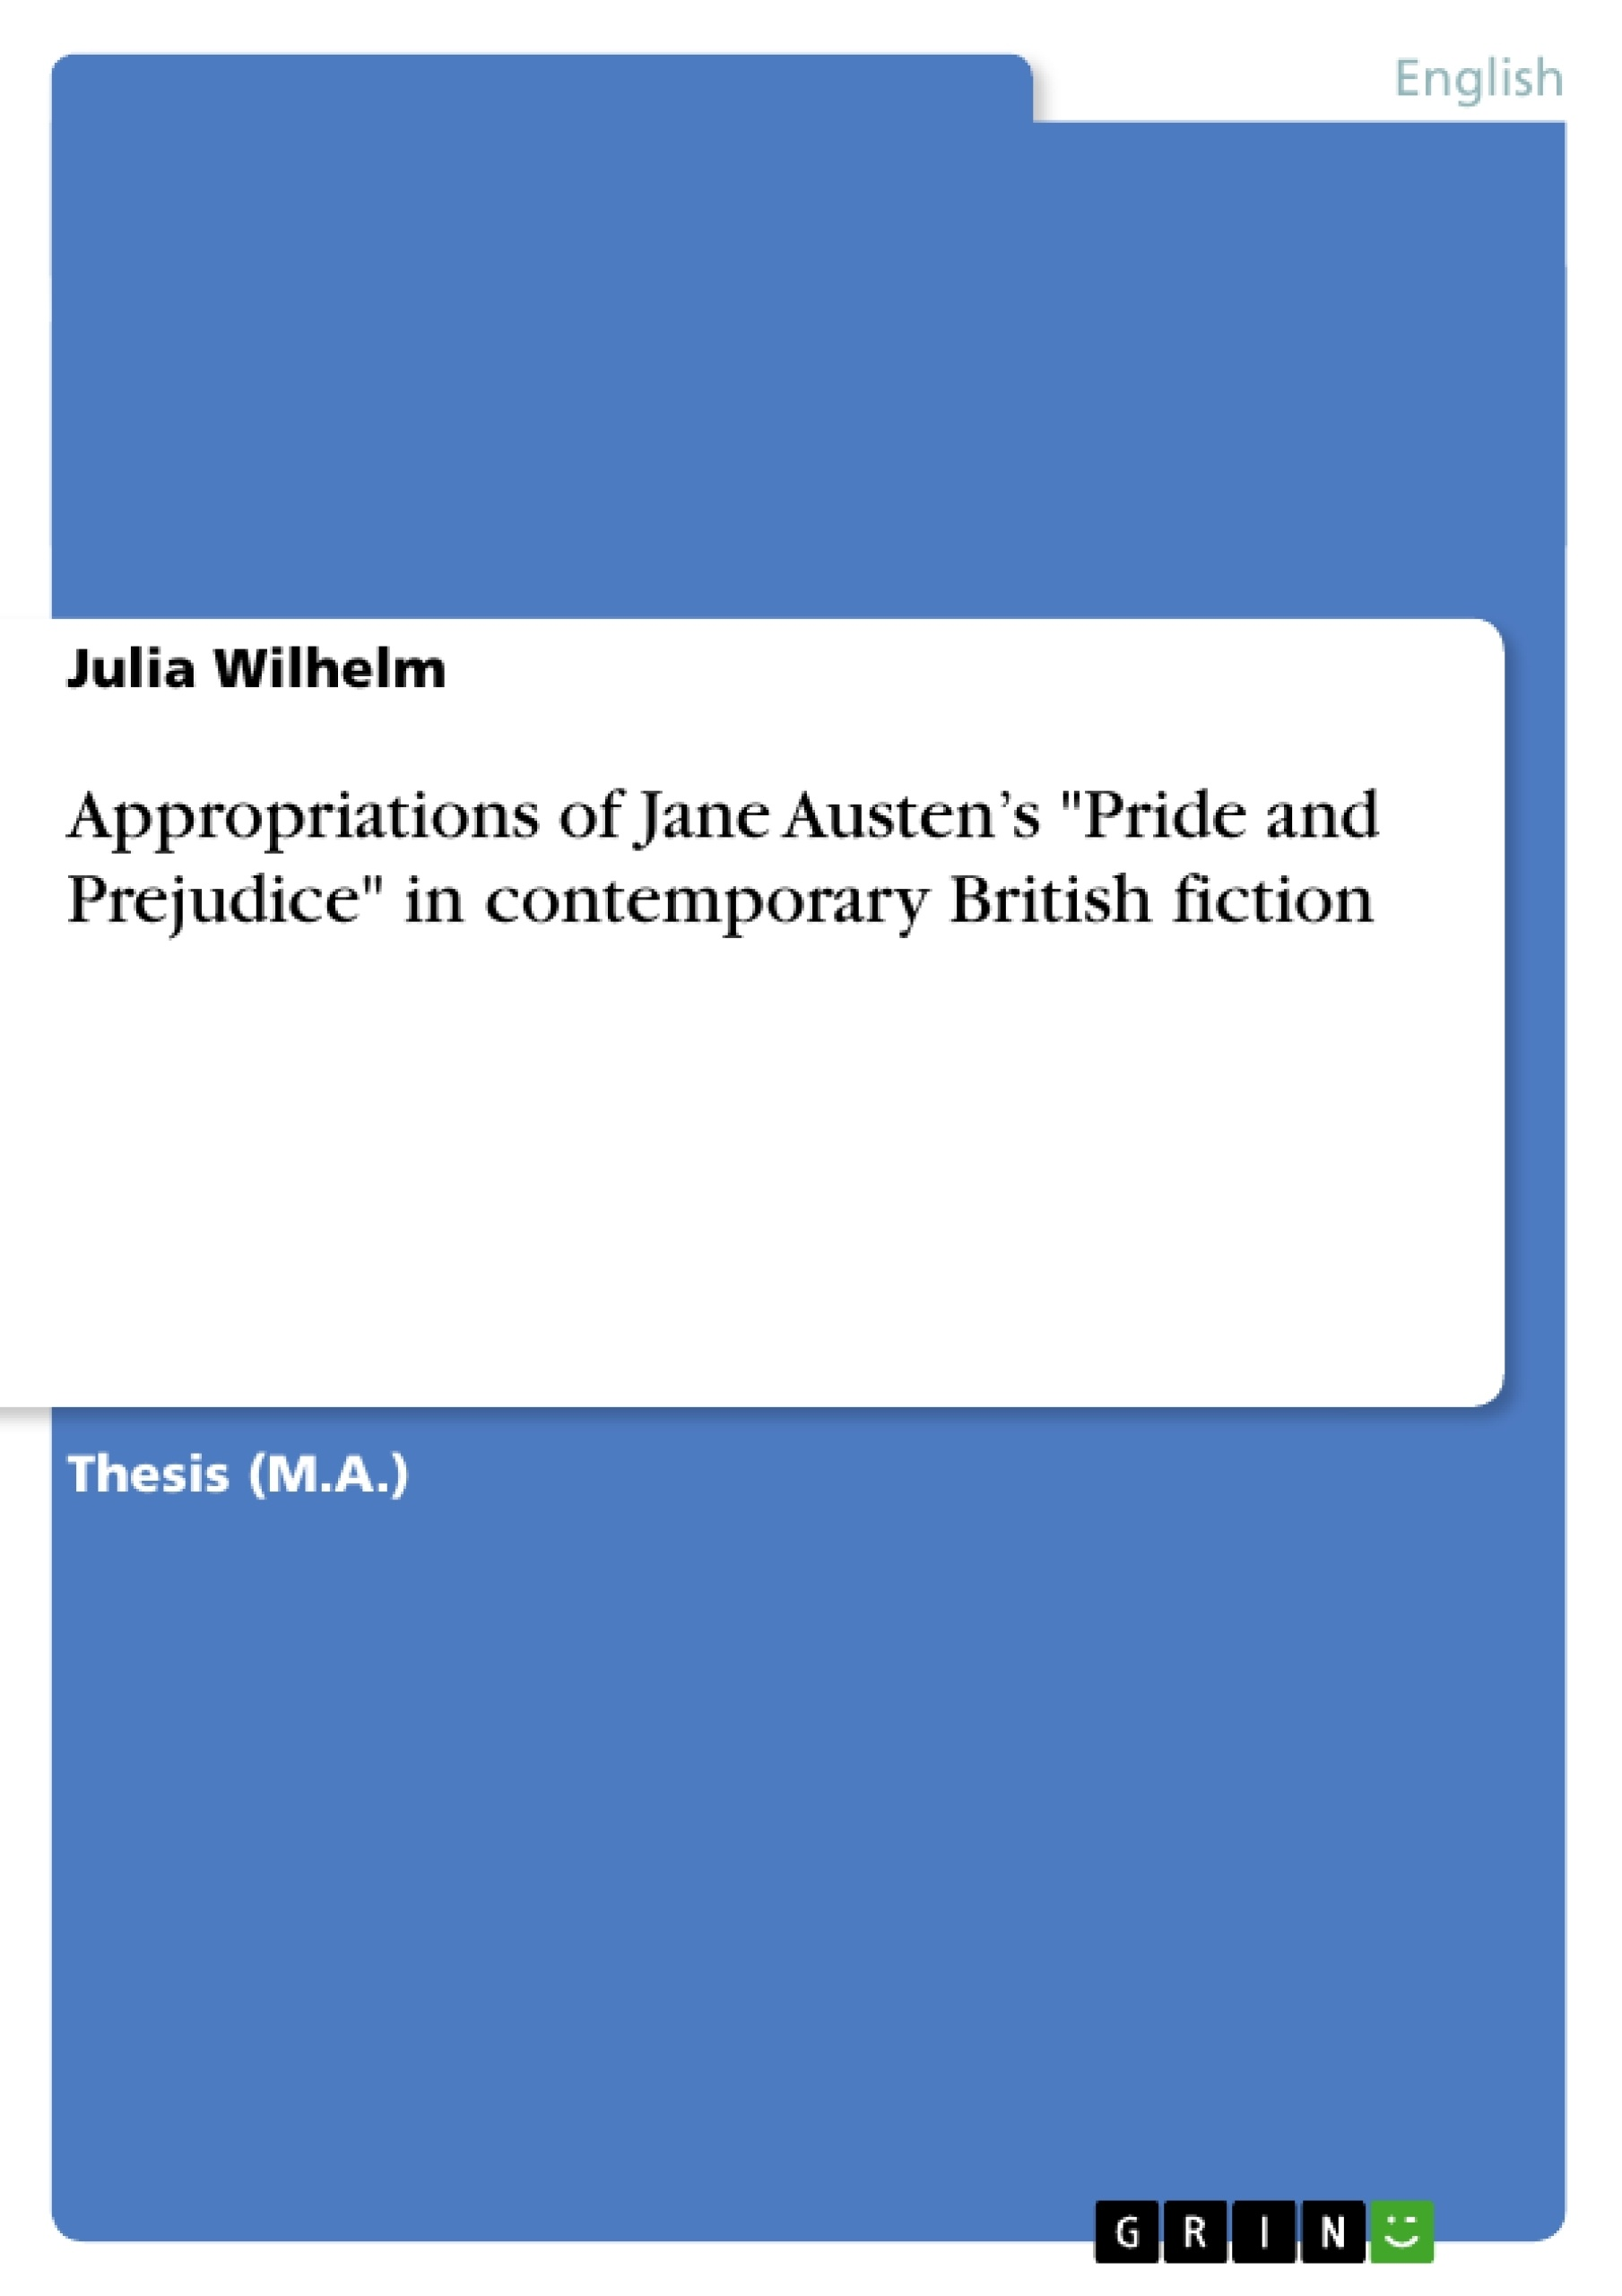 plot diagram of pride and prejudice 5 wire trailer wiring troubleshooting appropriations jane austen s in upload your own papers earn money win an iphone x